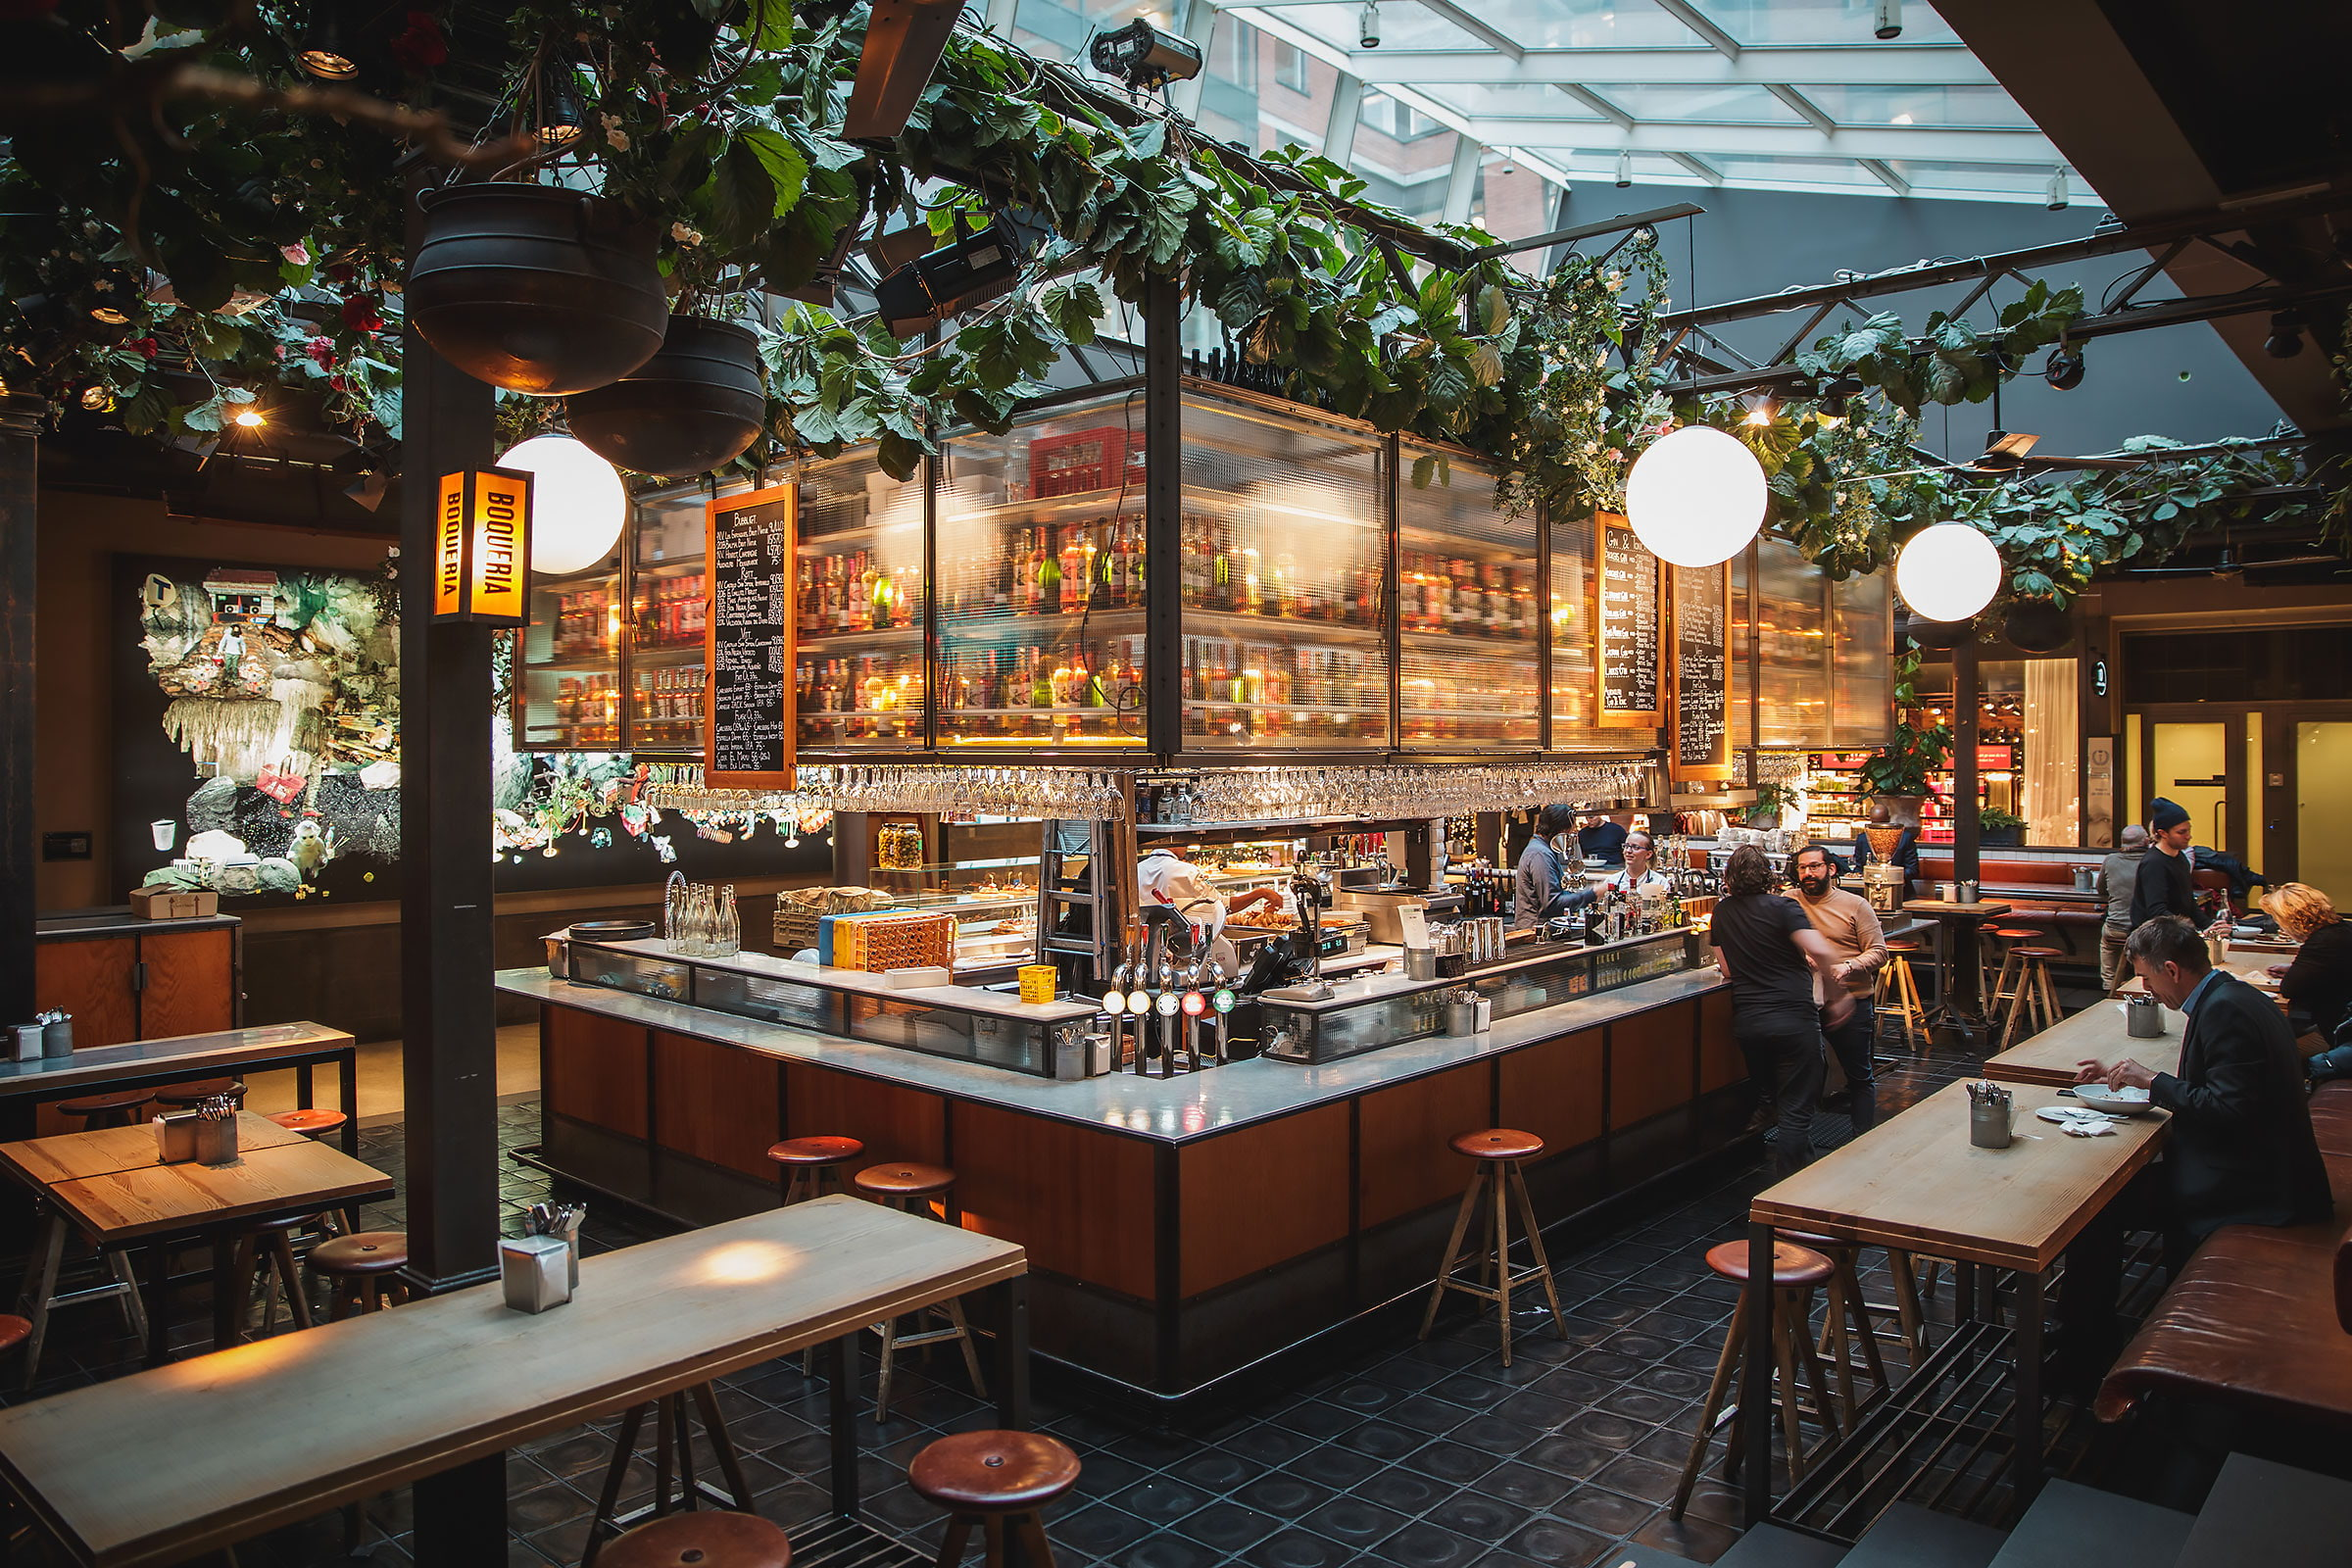 The guide to brunch restaurants for large groups